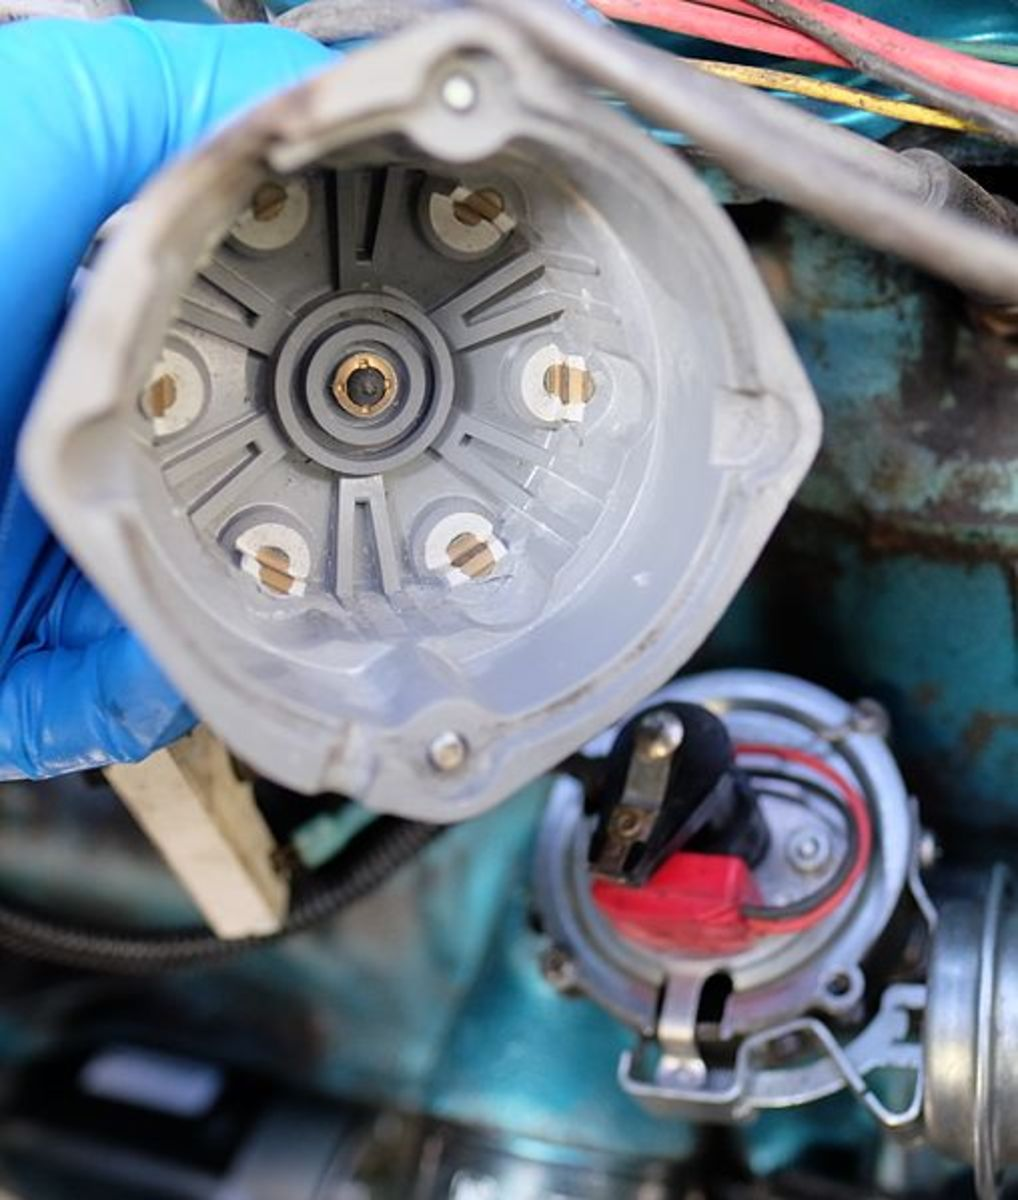 Carefully check the distributor cap's central and outer terminals and the rotor's tip.